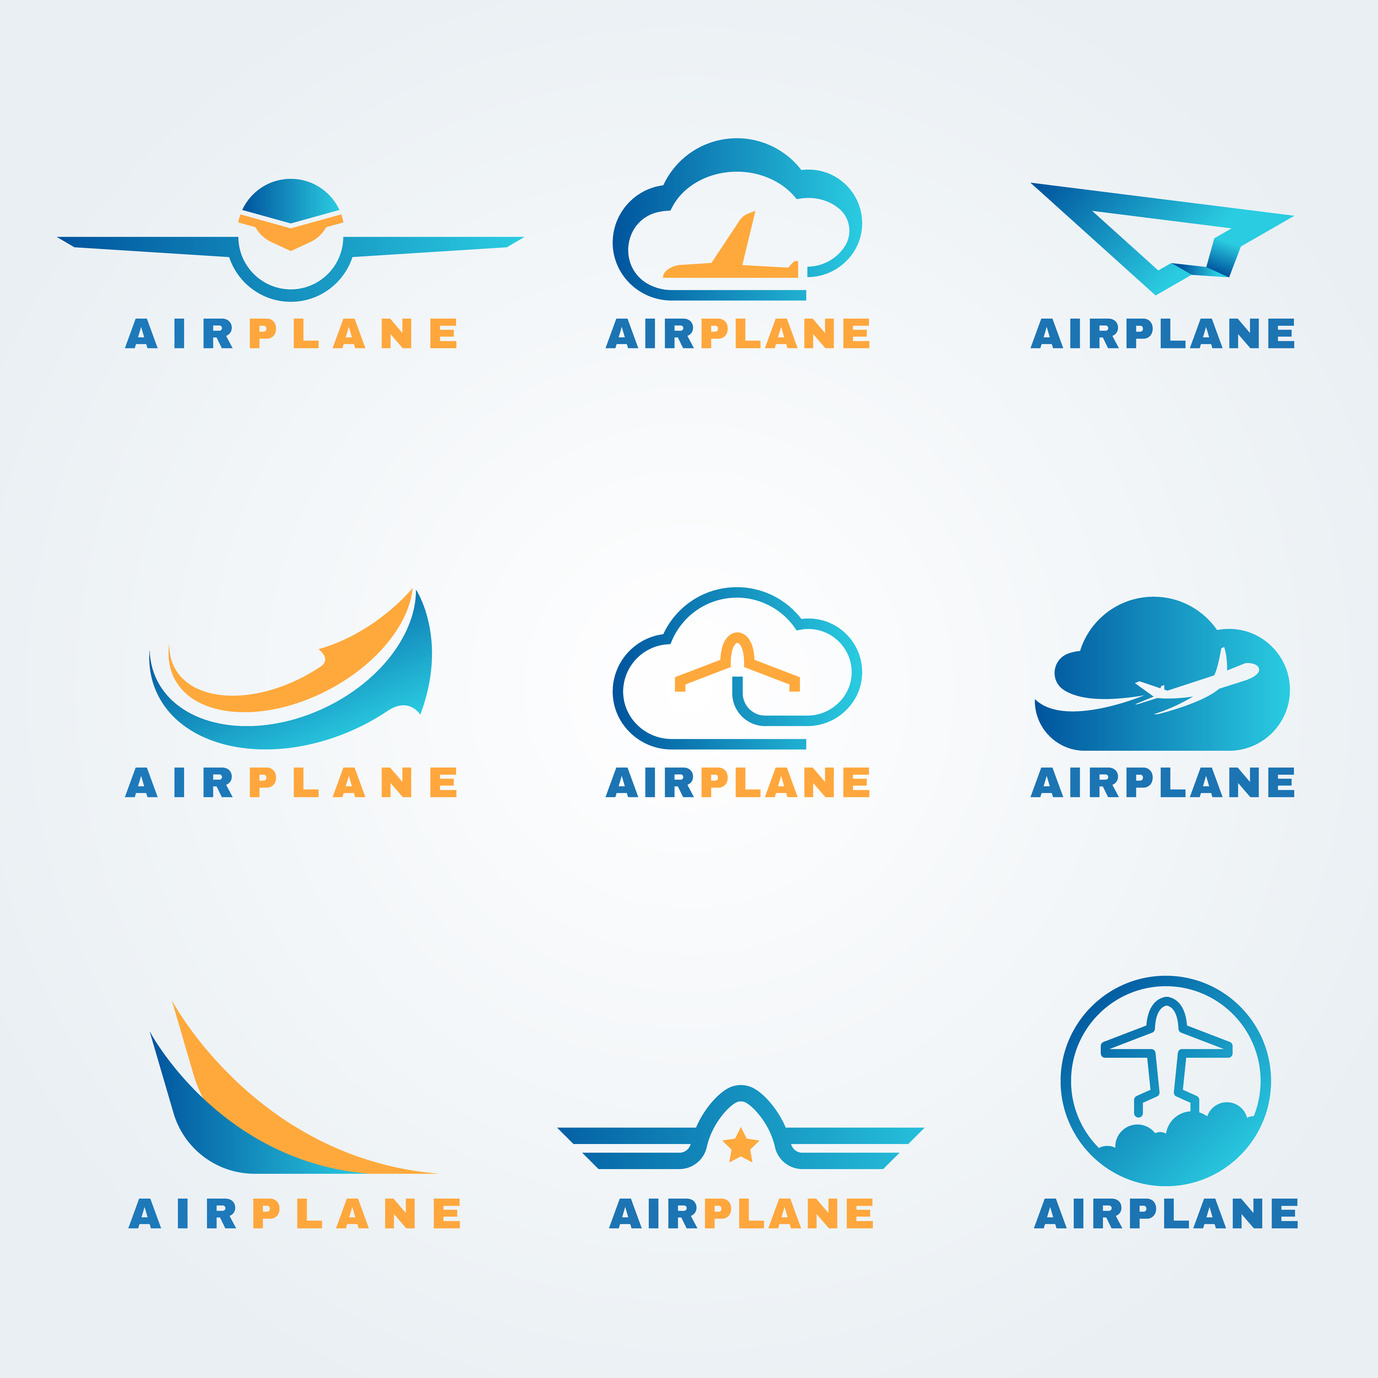 5 Traits Of An Unforgettable Airplane Logo Design